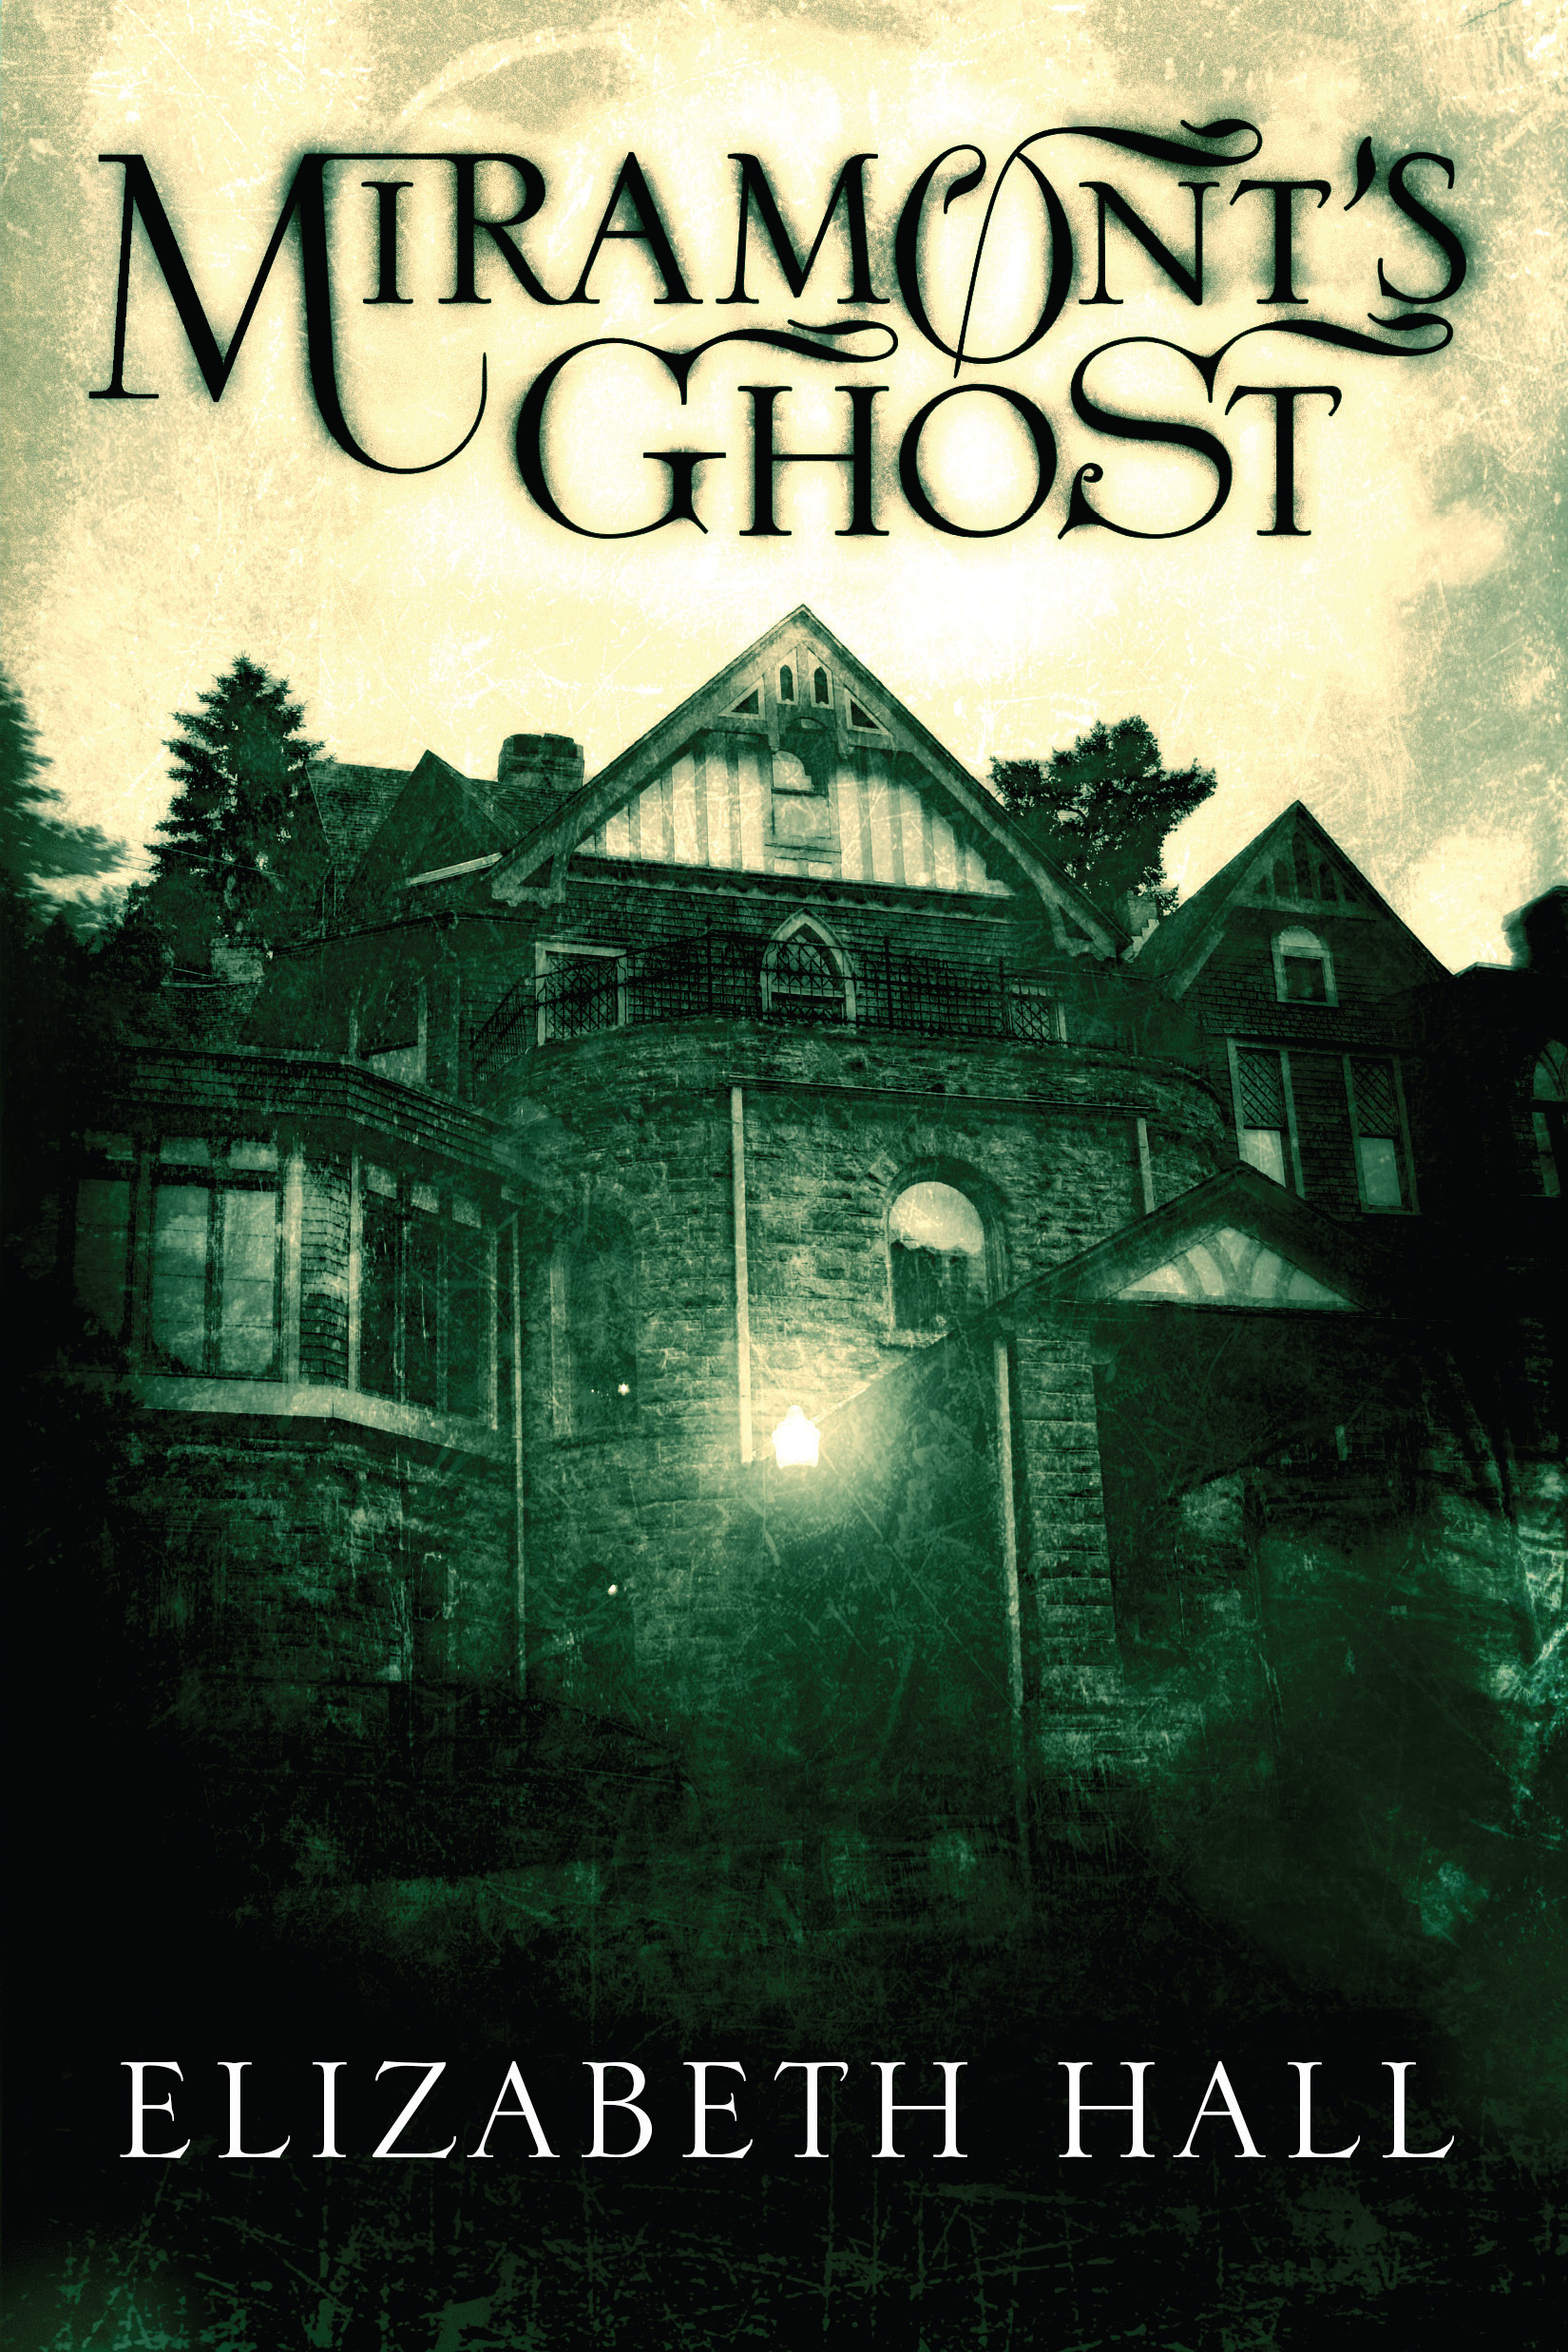 Elizabeth hall miramont s ghost was written with pen and paper